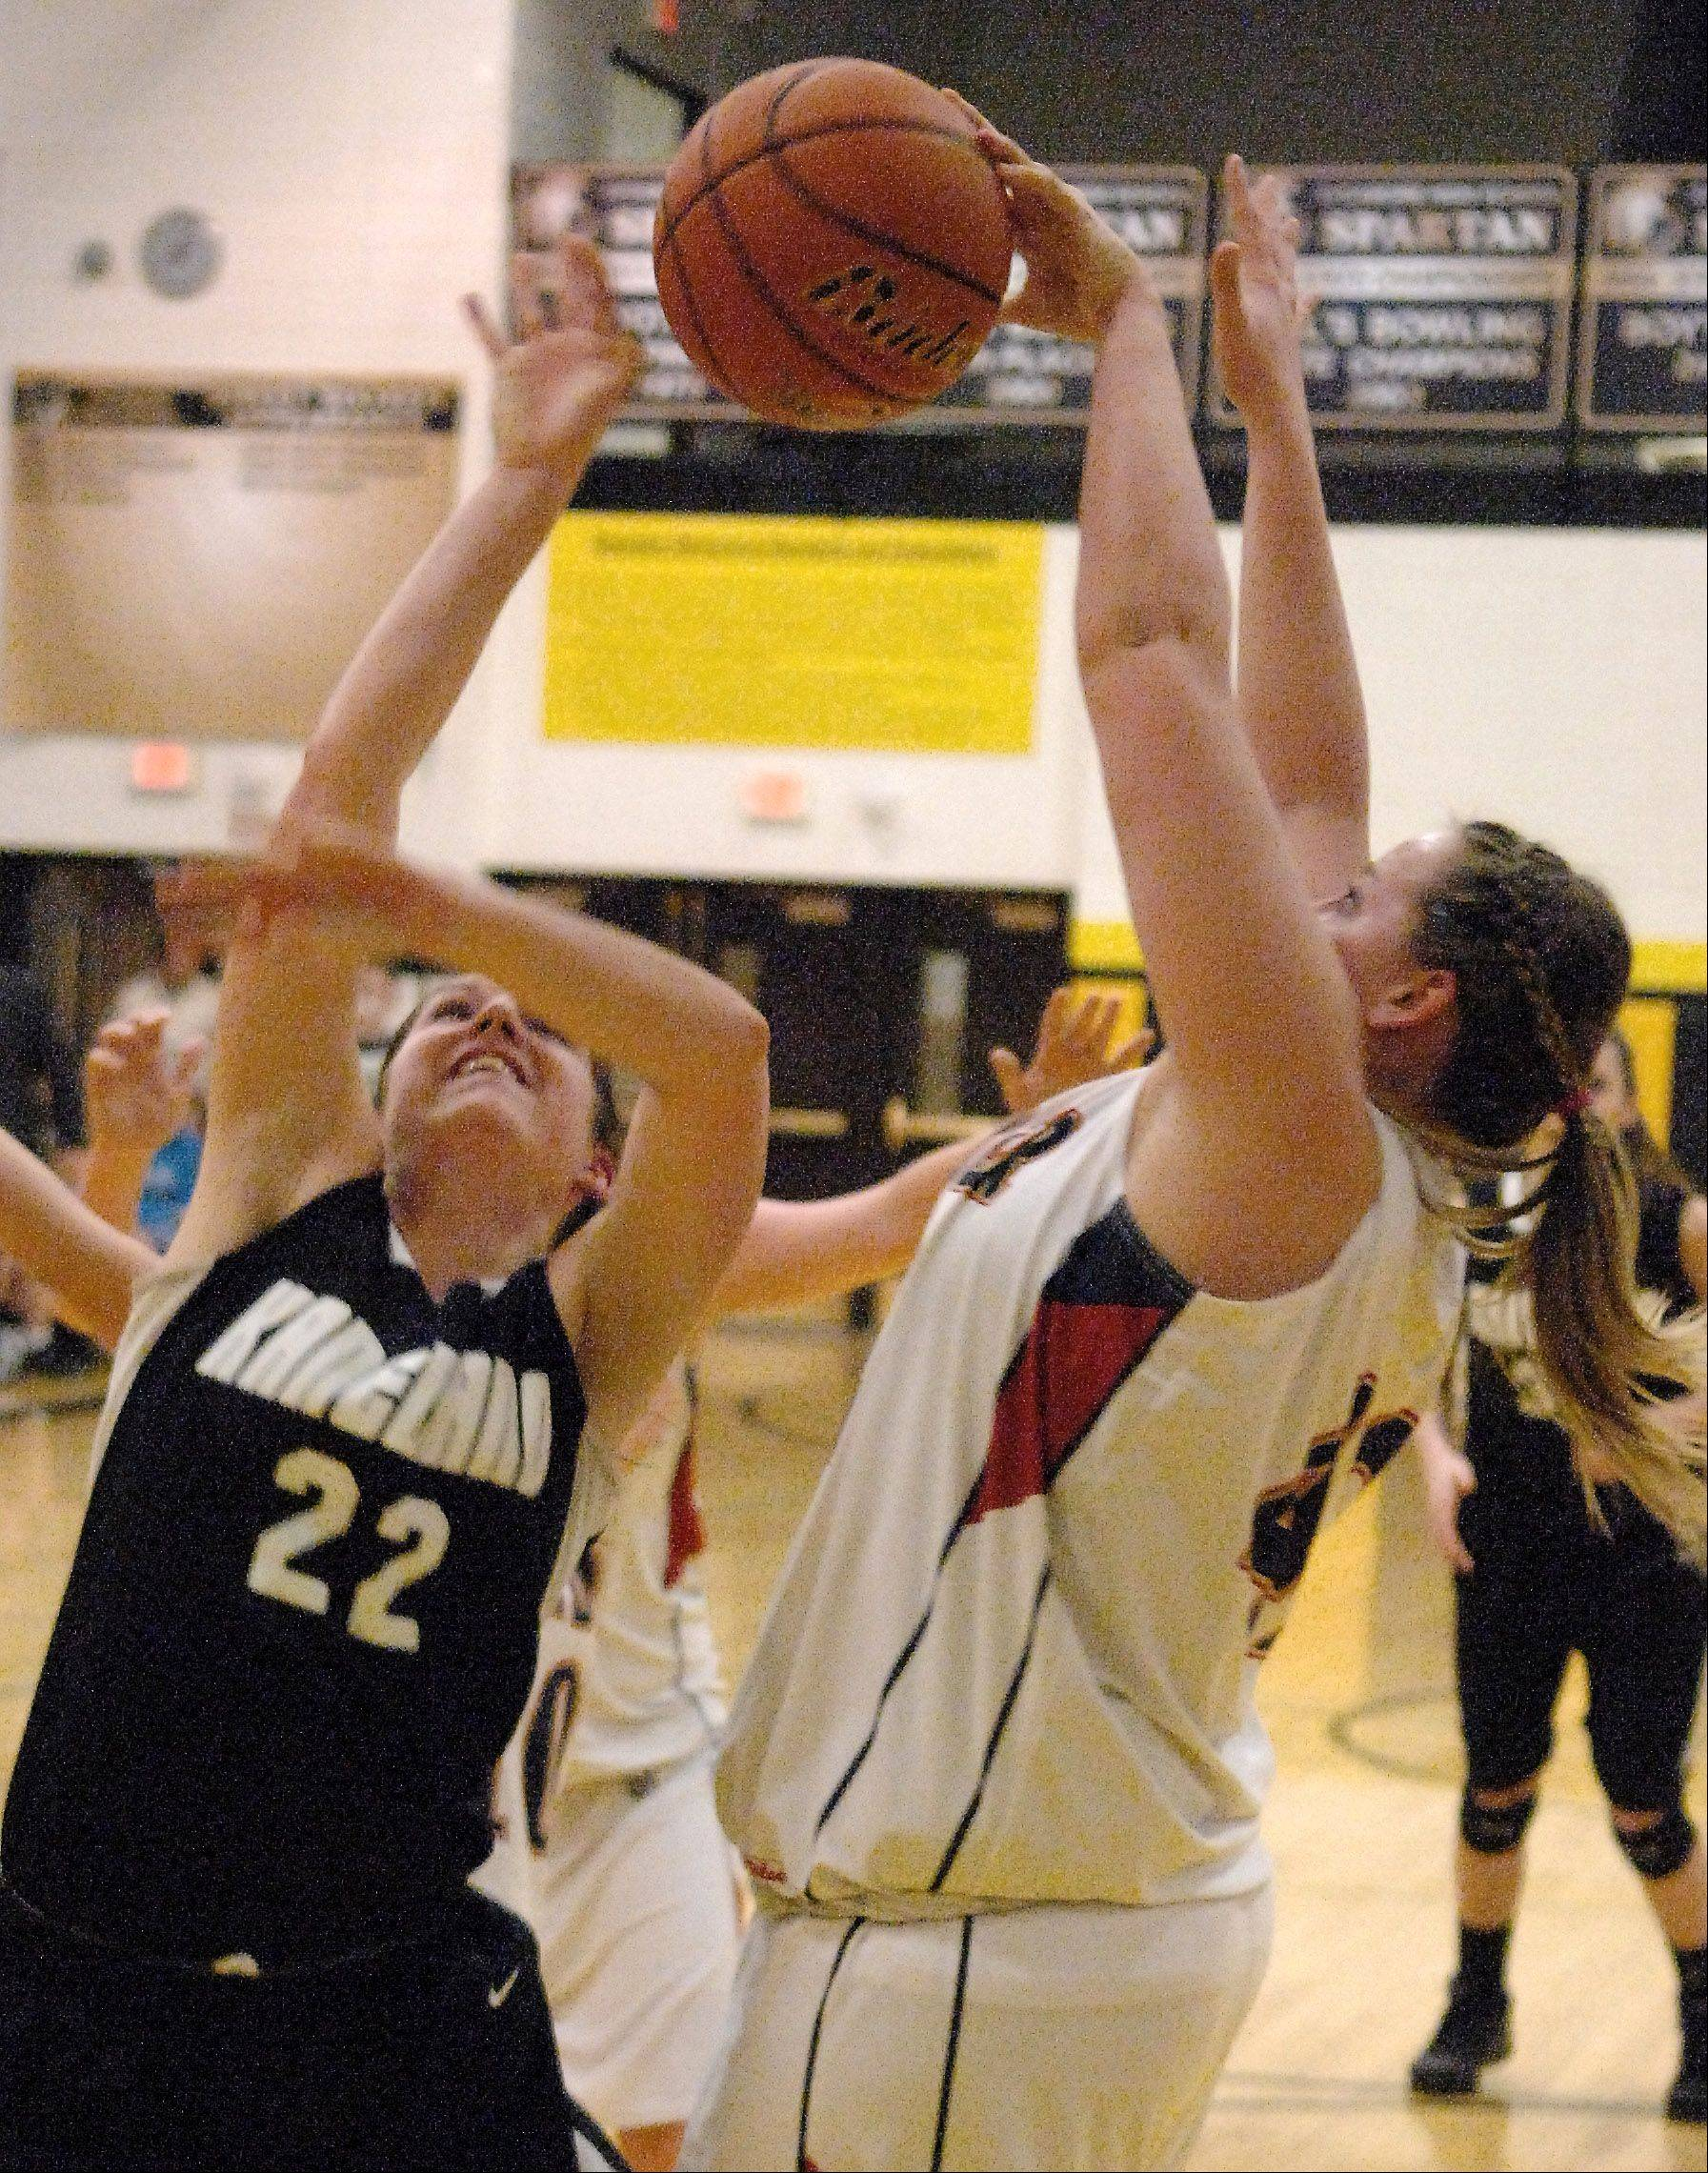 Kaneland's Brooke Harner has her shot blocked by Belvidere North's Katie Dovenmuehle during Thursday's sectional championship in Sycamore.